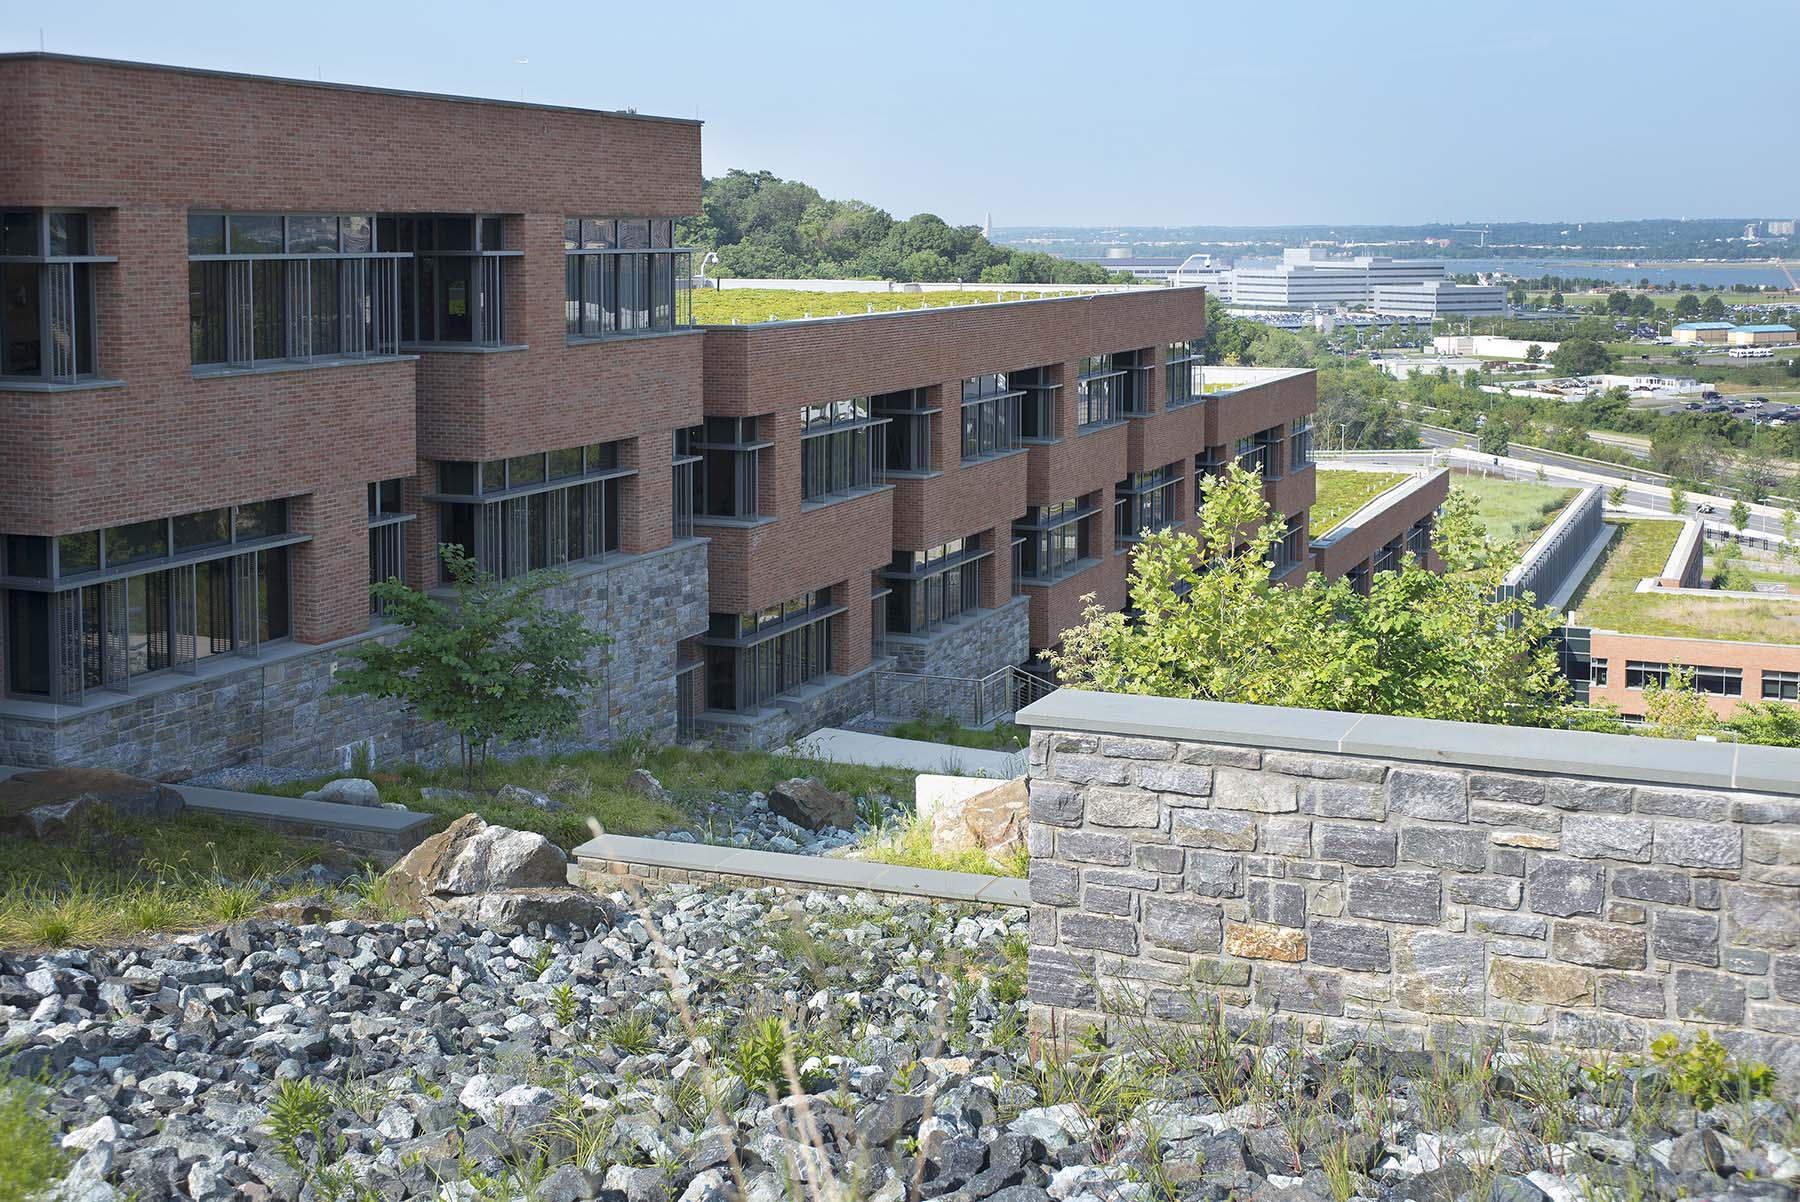 stone veneer buildings at USCG Headquarters